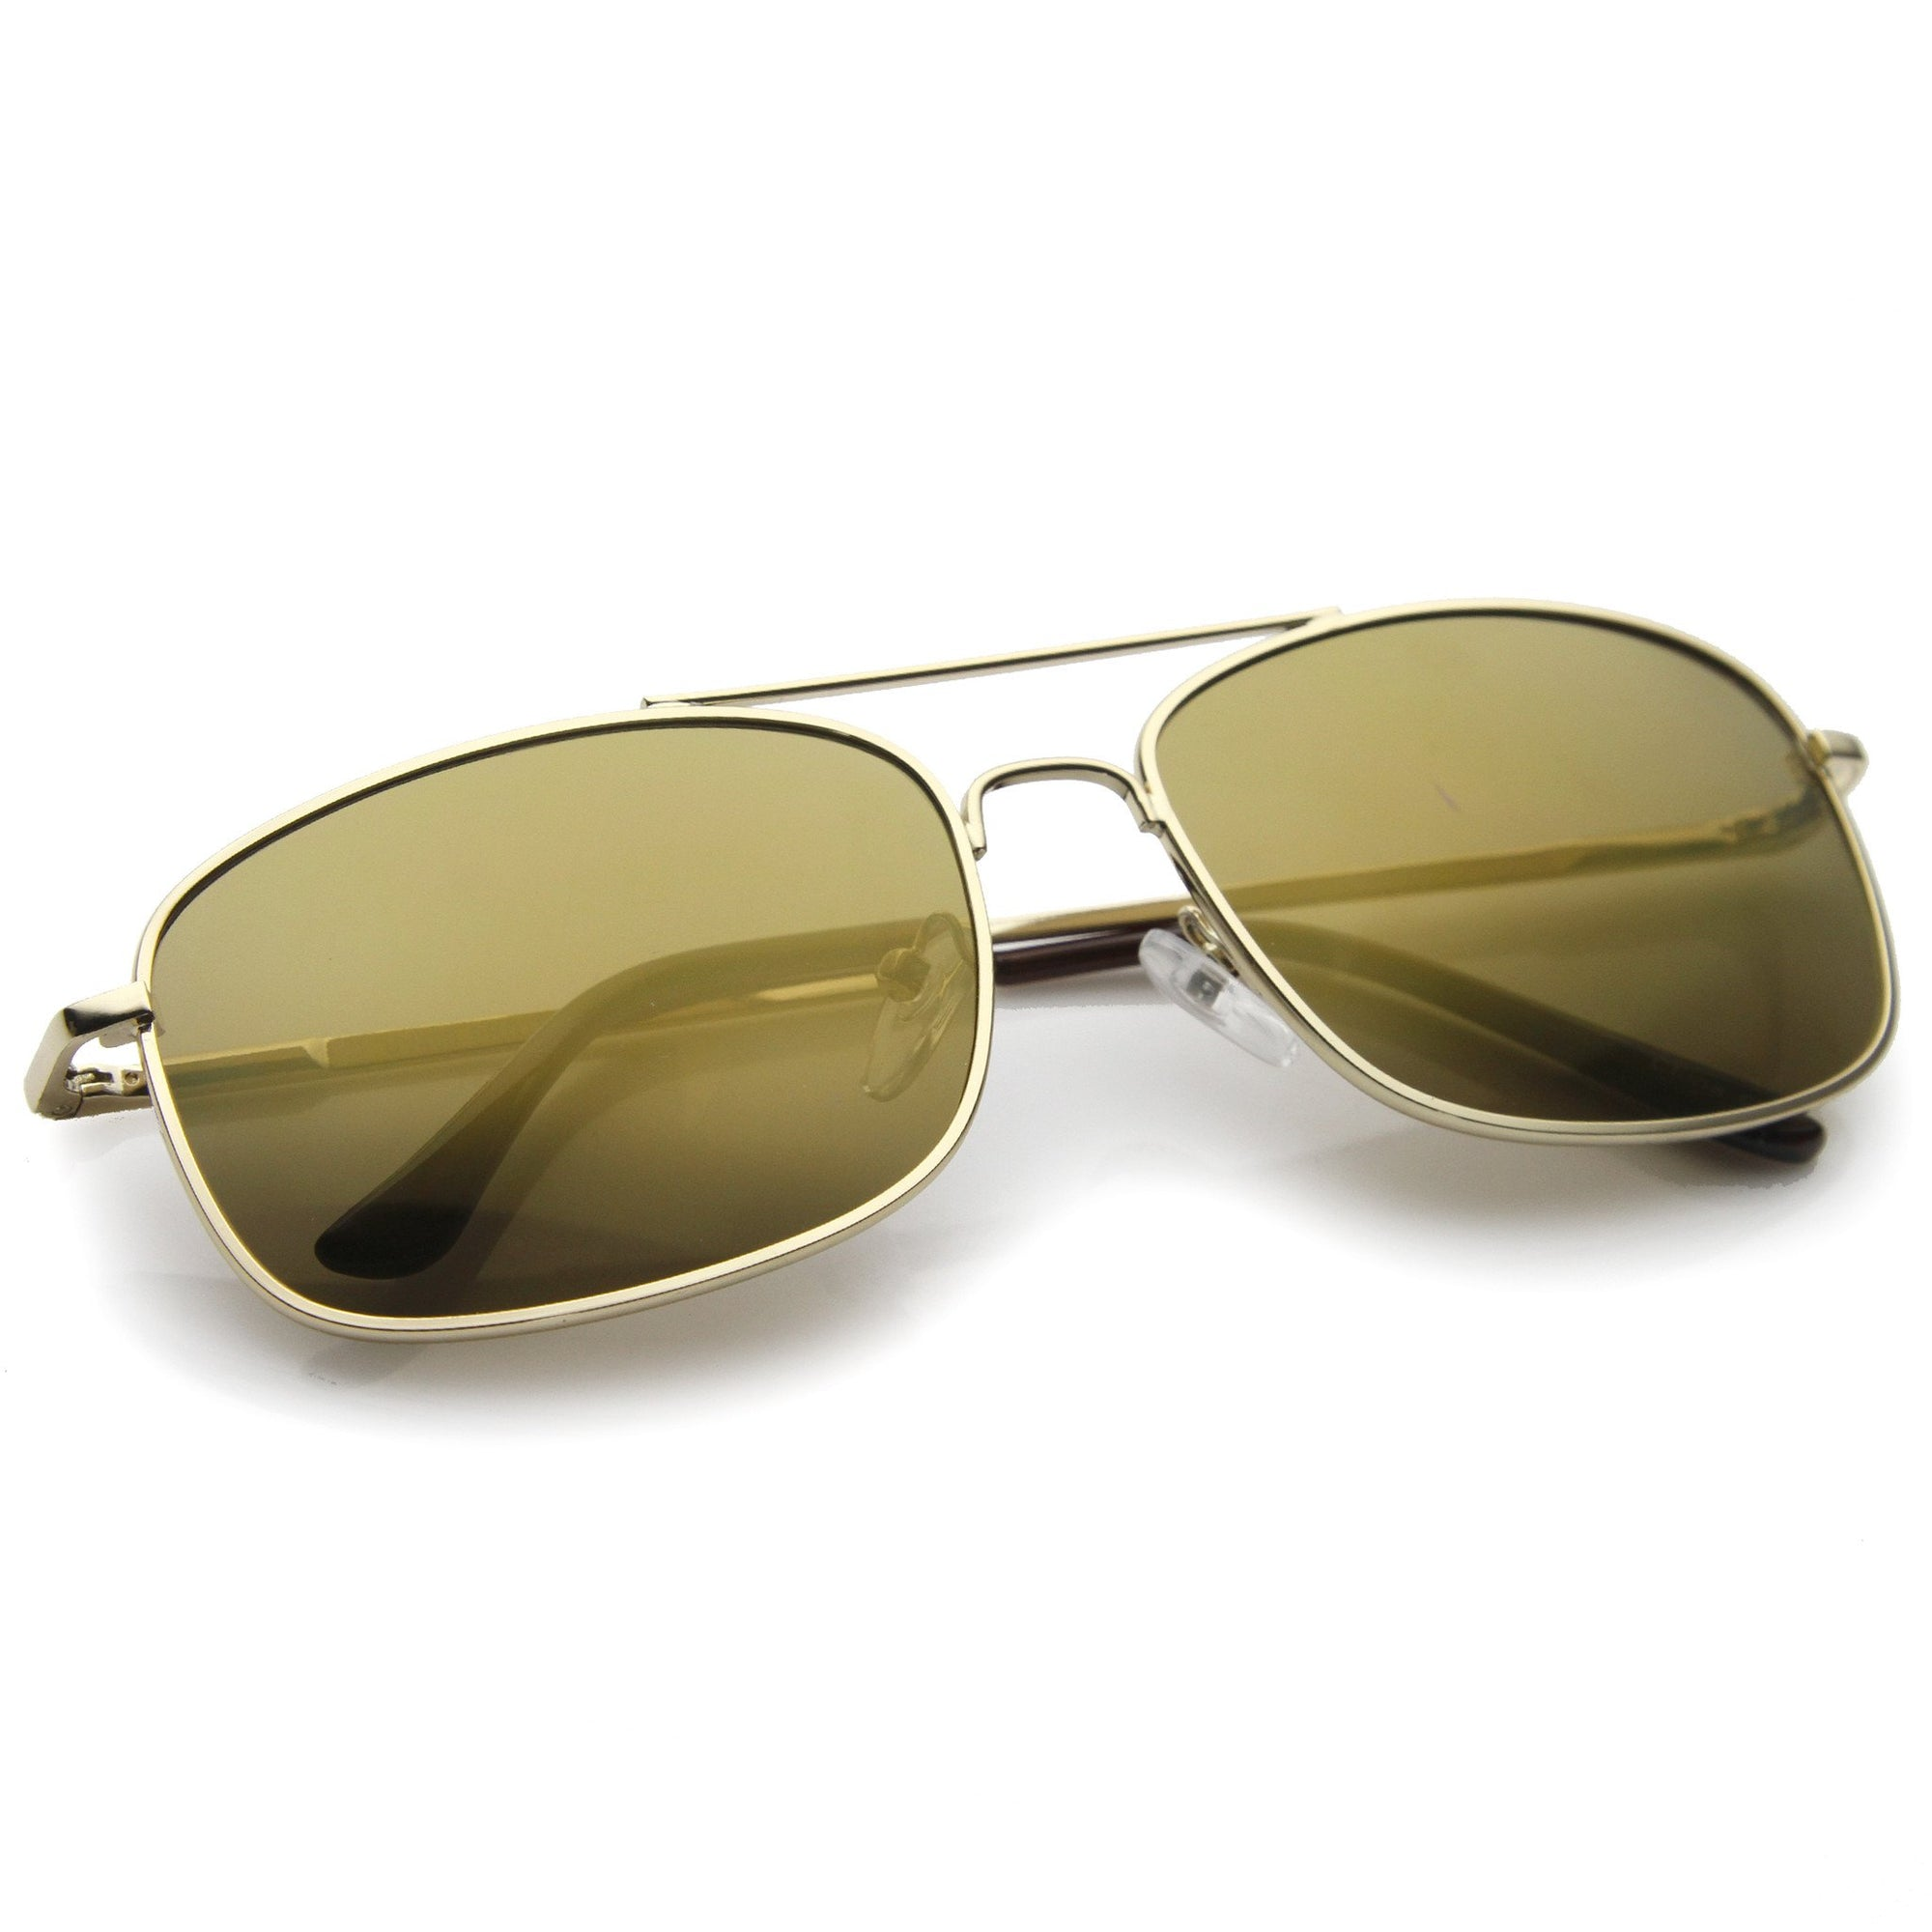 85fb97fb794 ... Men s Sports Square Gold Metal Mirrored Lens Aviator Sunglasses A026 ·  Gold Brown · Gold Brown